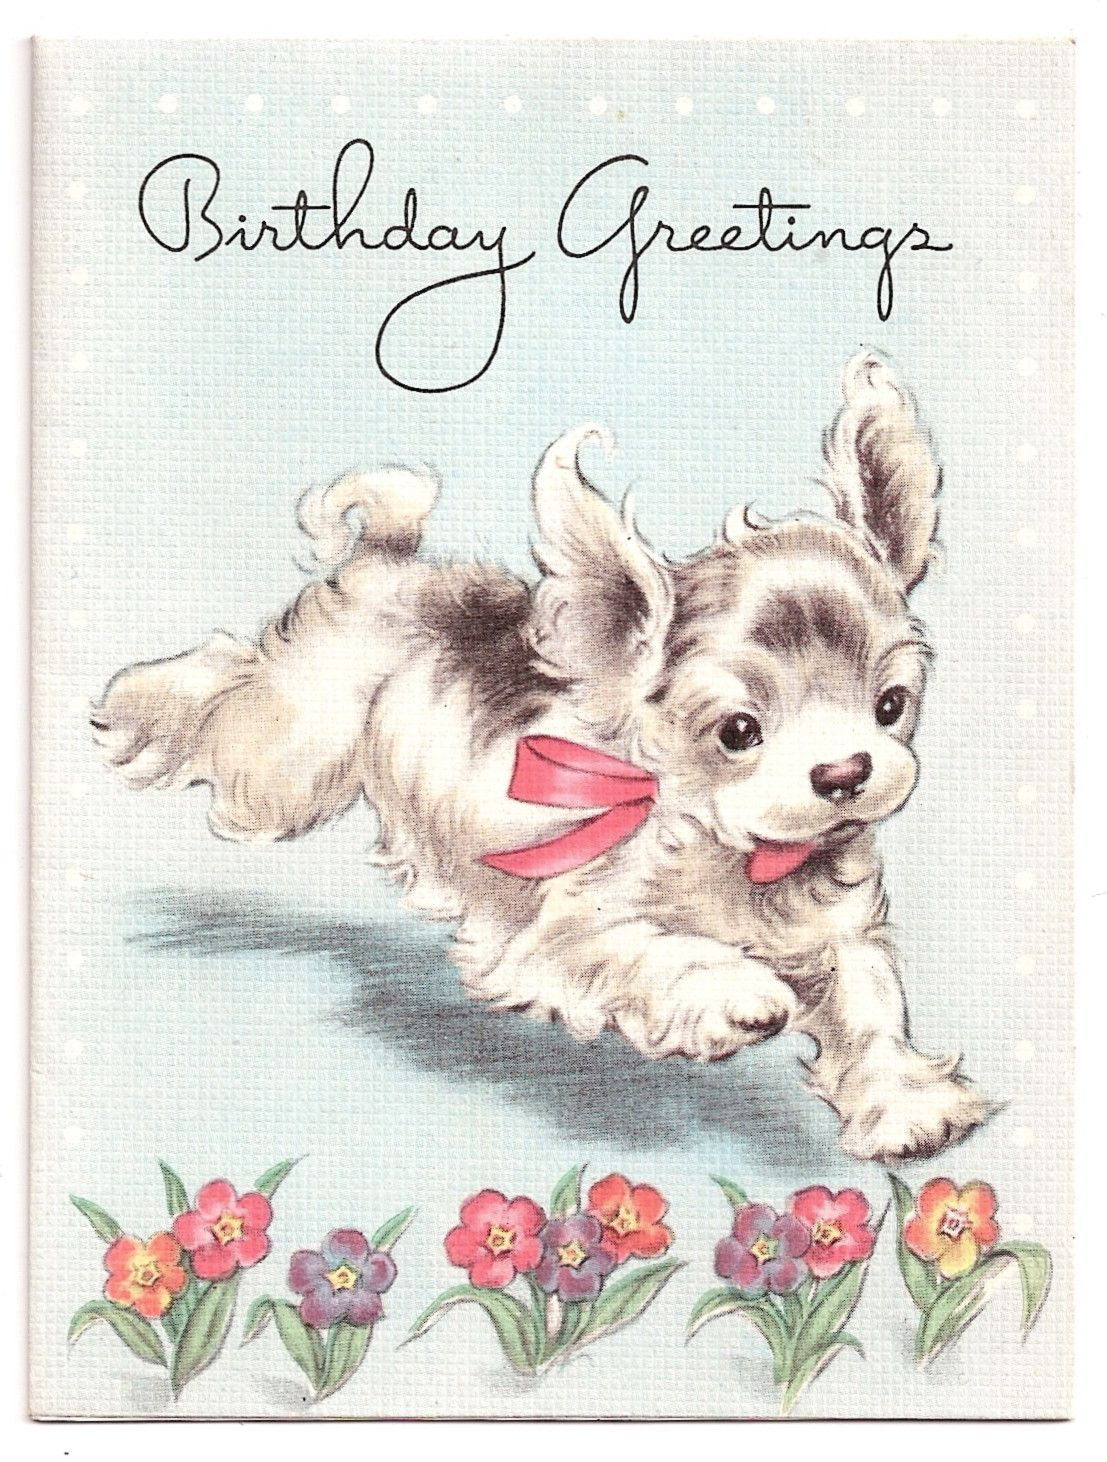 Vintage dog collectibles i antique online vintage images is a sweet pair of early childrens birthday greeting cards with juvenile images kristyandbryce Choice Image